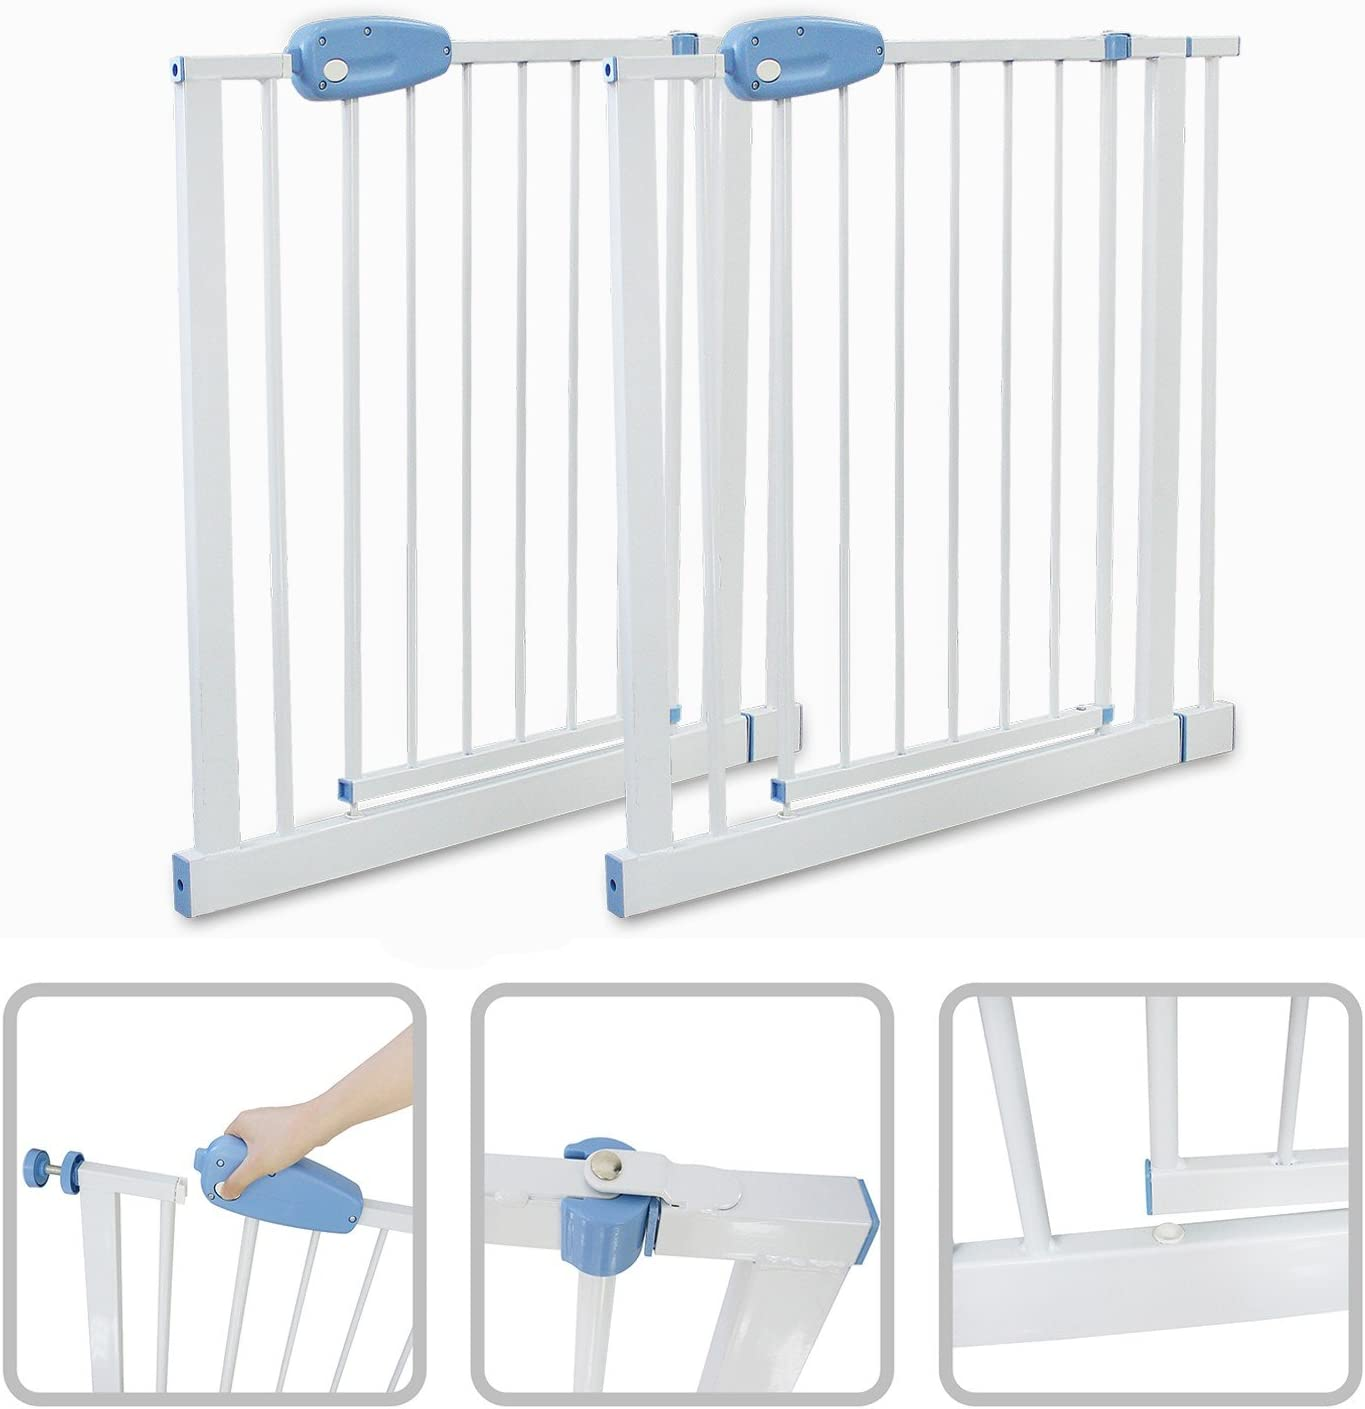 Adjustable Door Gate Width: 74-87 cm Todeco Height: 74 cm Baby Safety Gate 74 to 87cm White 29.1 to 34.2 inch